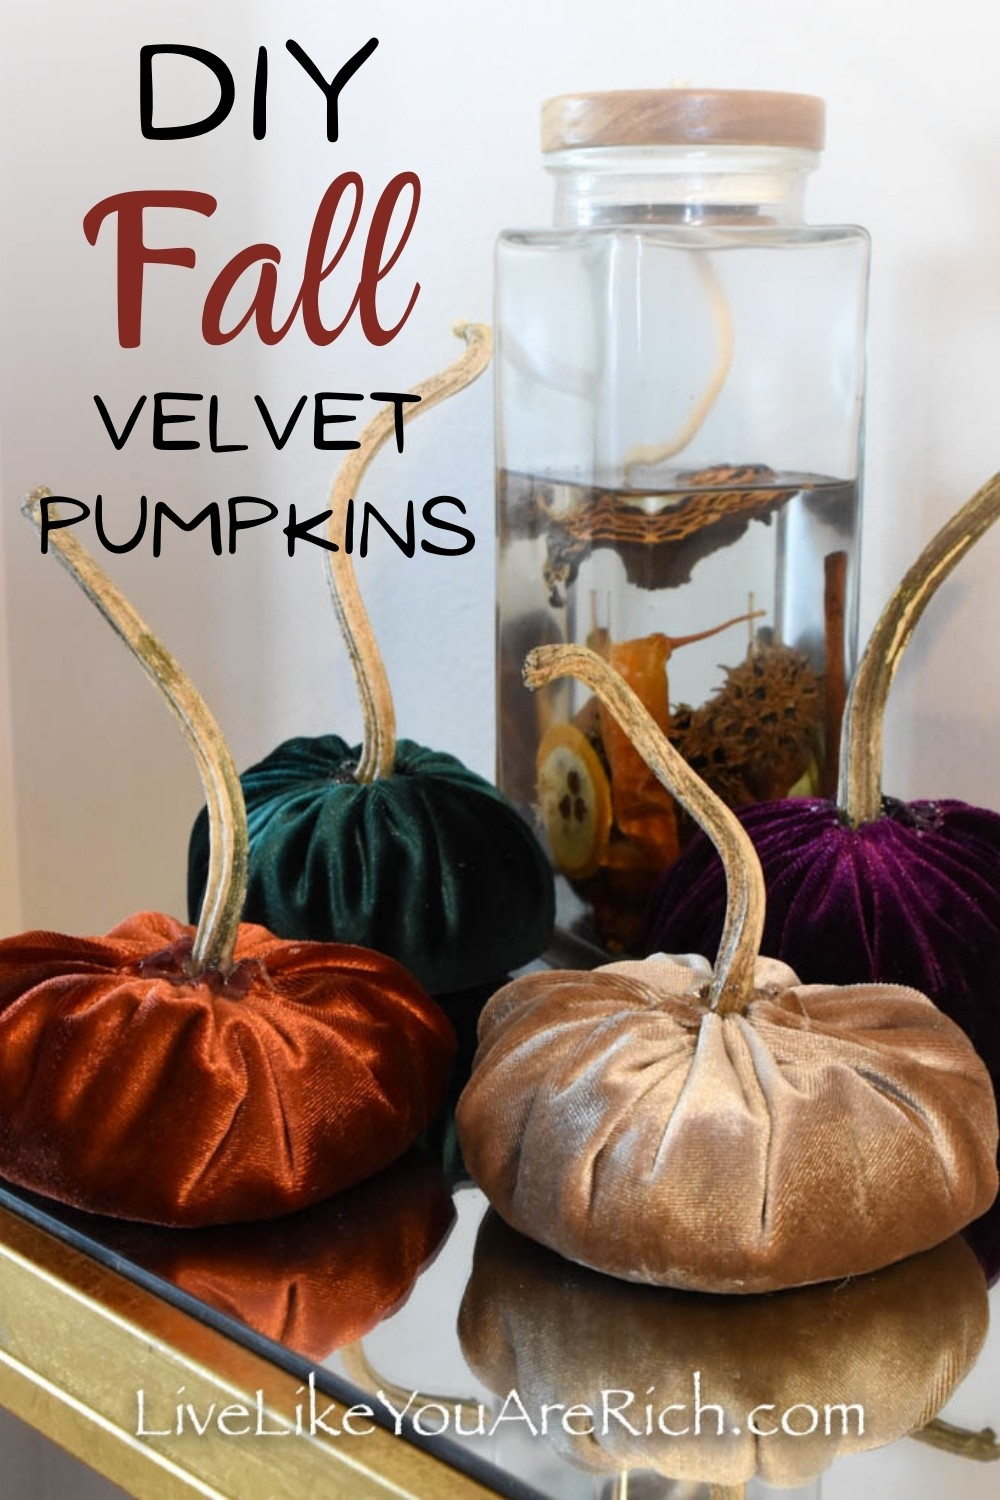 Looking for fun craft to make with your kids? These DIY Fall velvet pumpkins are inexpensive and simple to make. My six year old daughter and I put them together in less than 45 minutes. This would make such a group craft and also a fun craft to make with kids. #fall #fallcraft #pumpkin